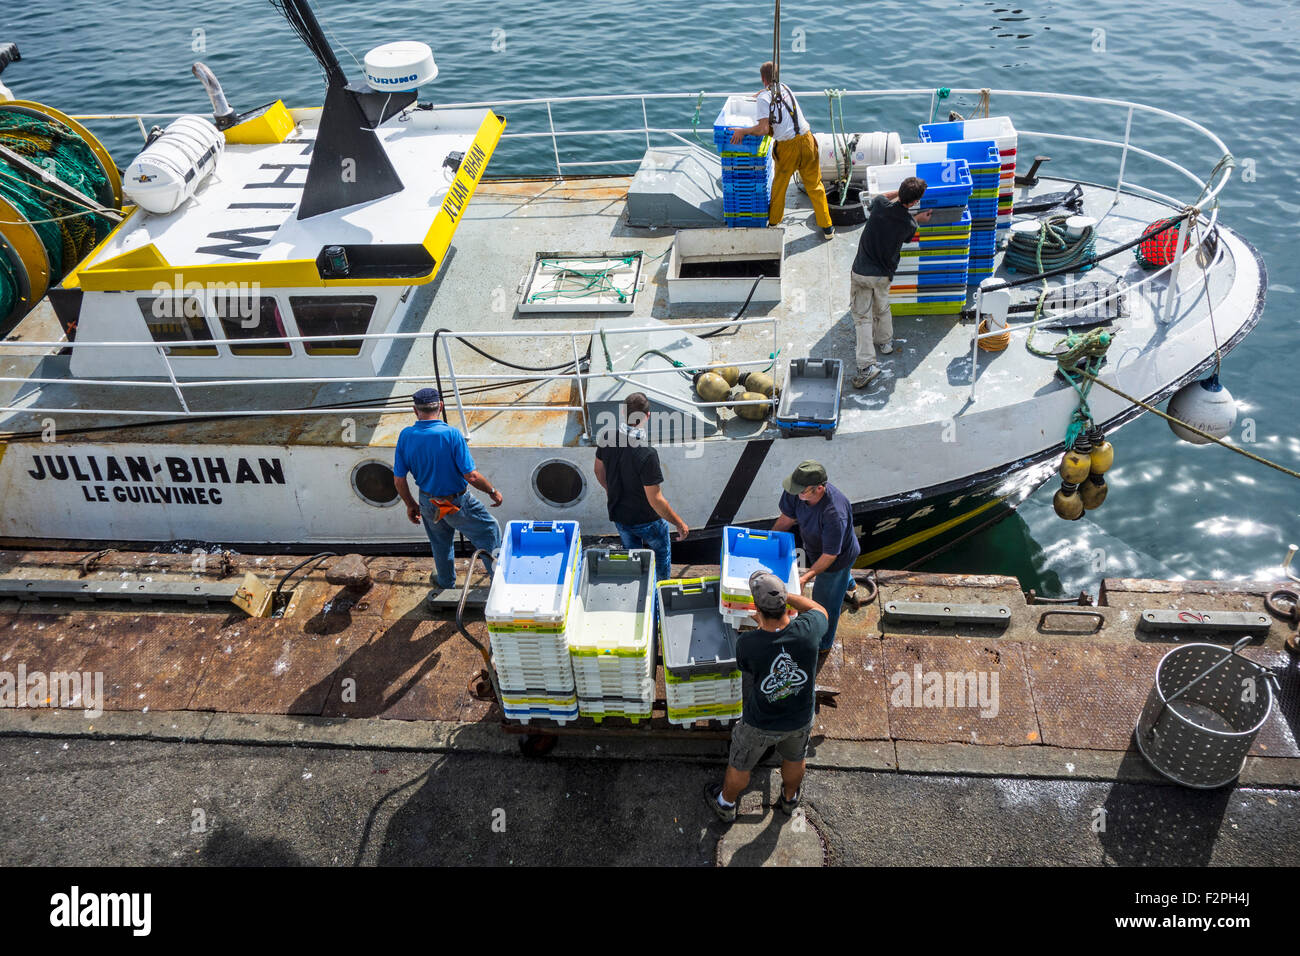 Fishermen on board of fishing boat loading plastic trays along quay of fish auction market in Guilvinec port, Brittany, - Stock Image